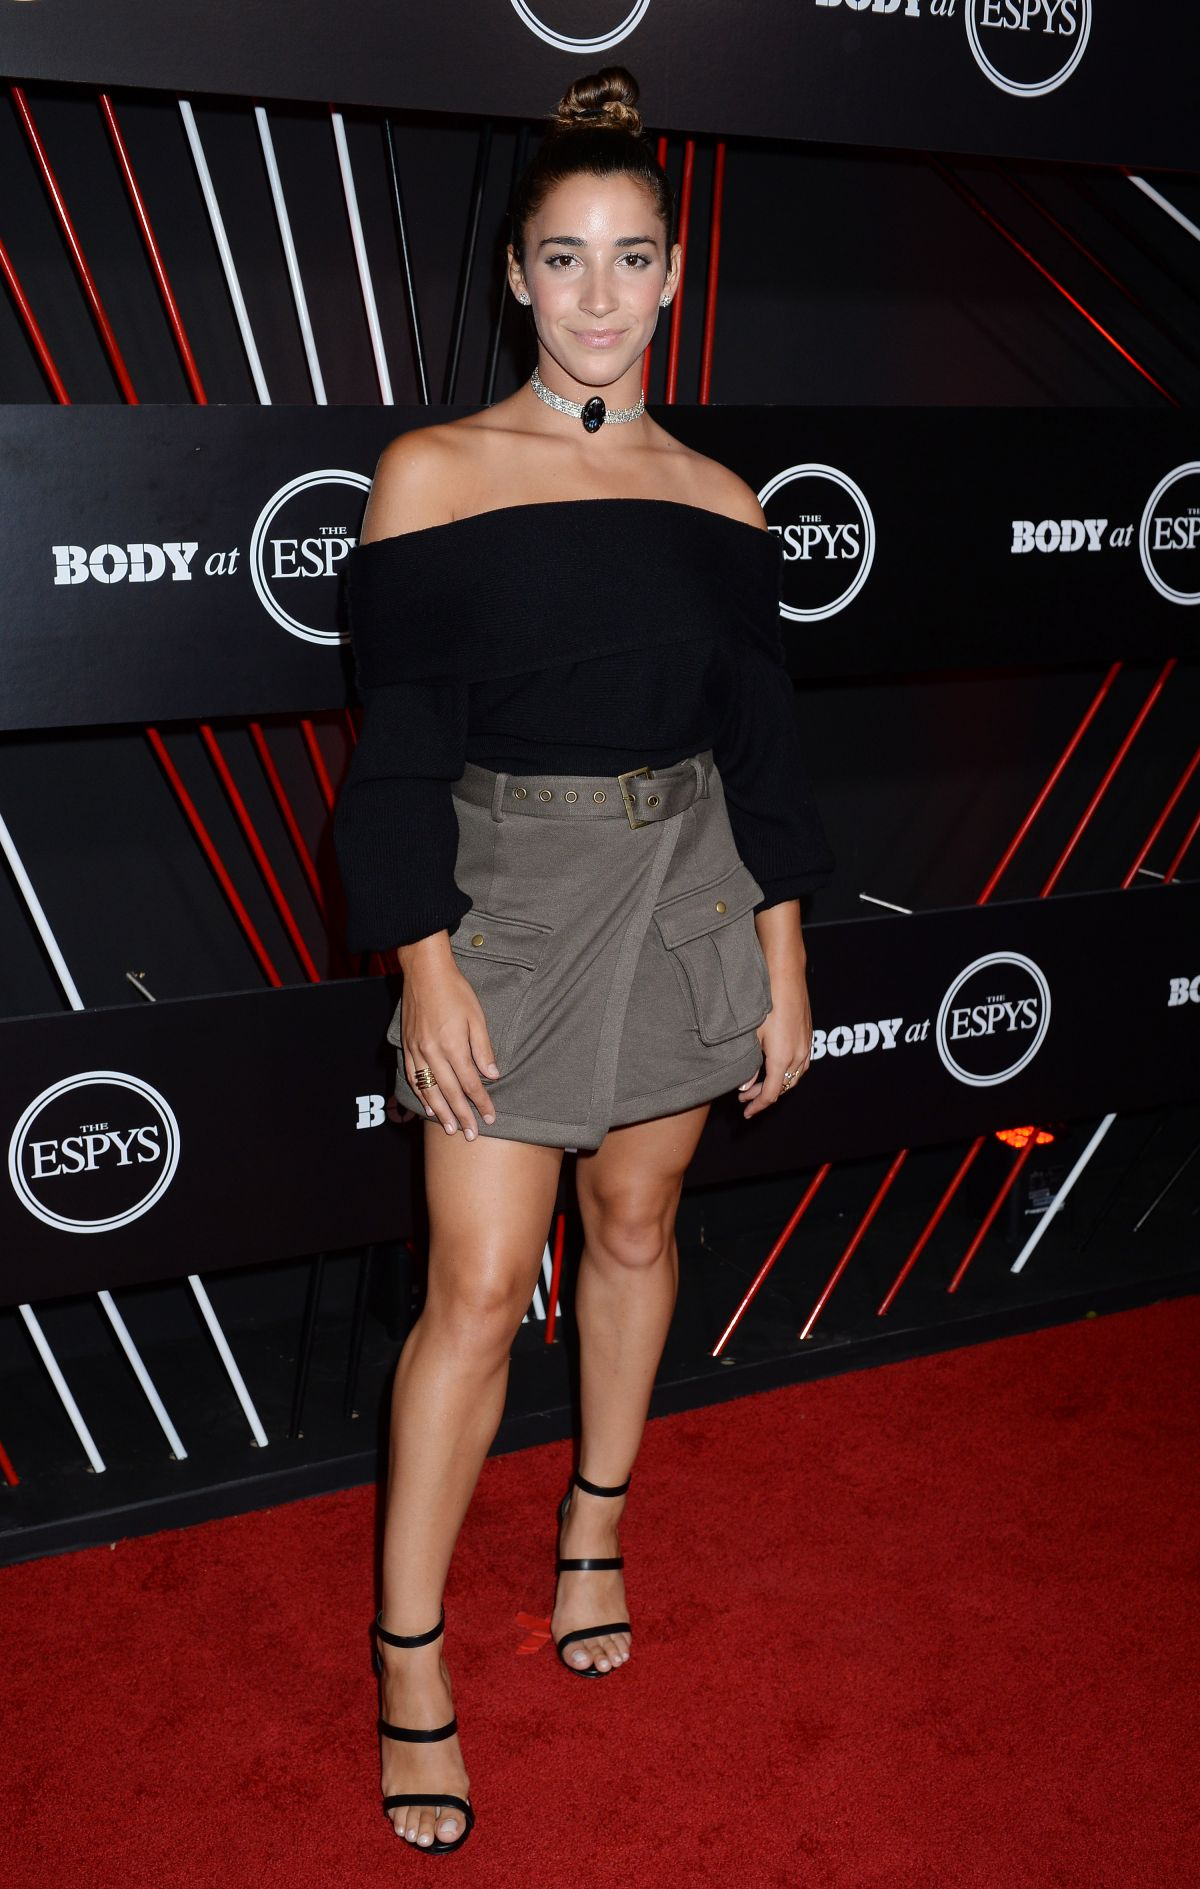 Aly Raisman At BODY at ESPYS party in Hollywood